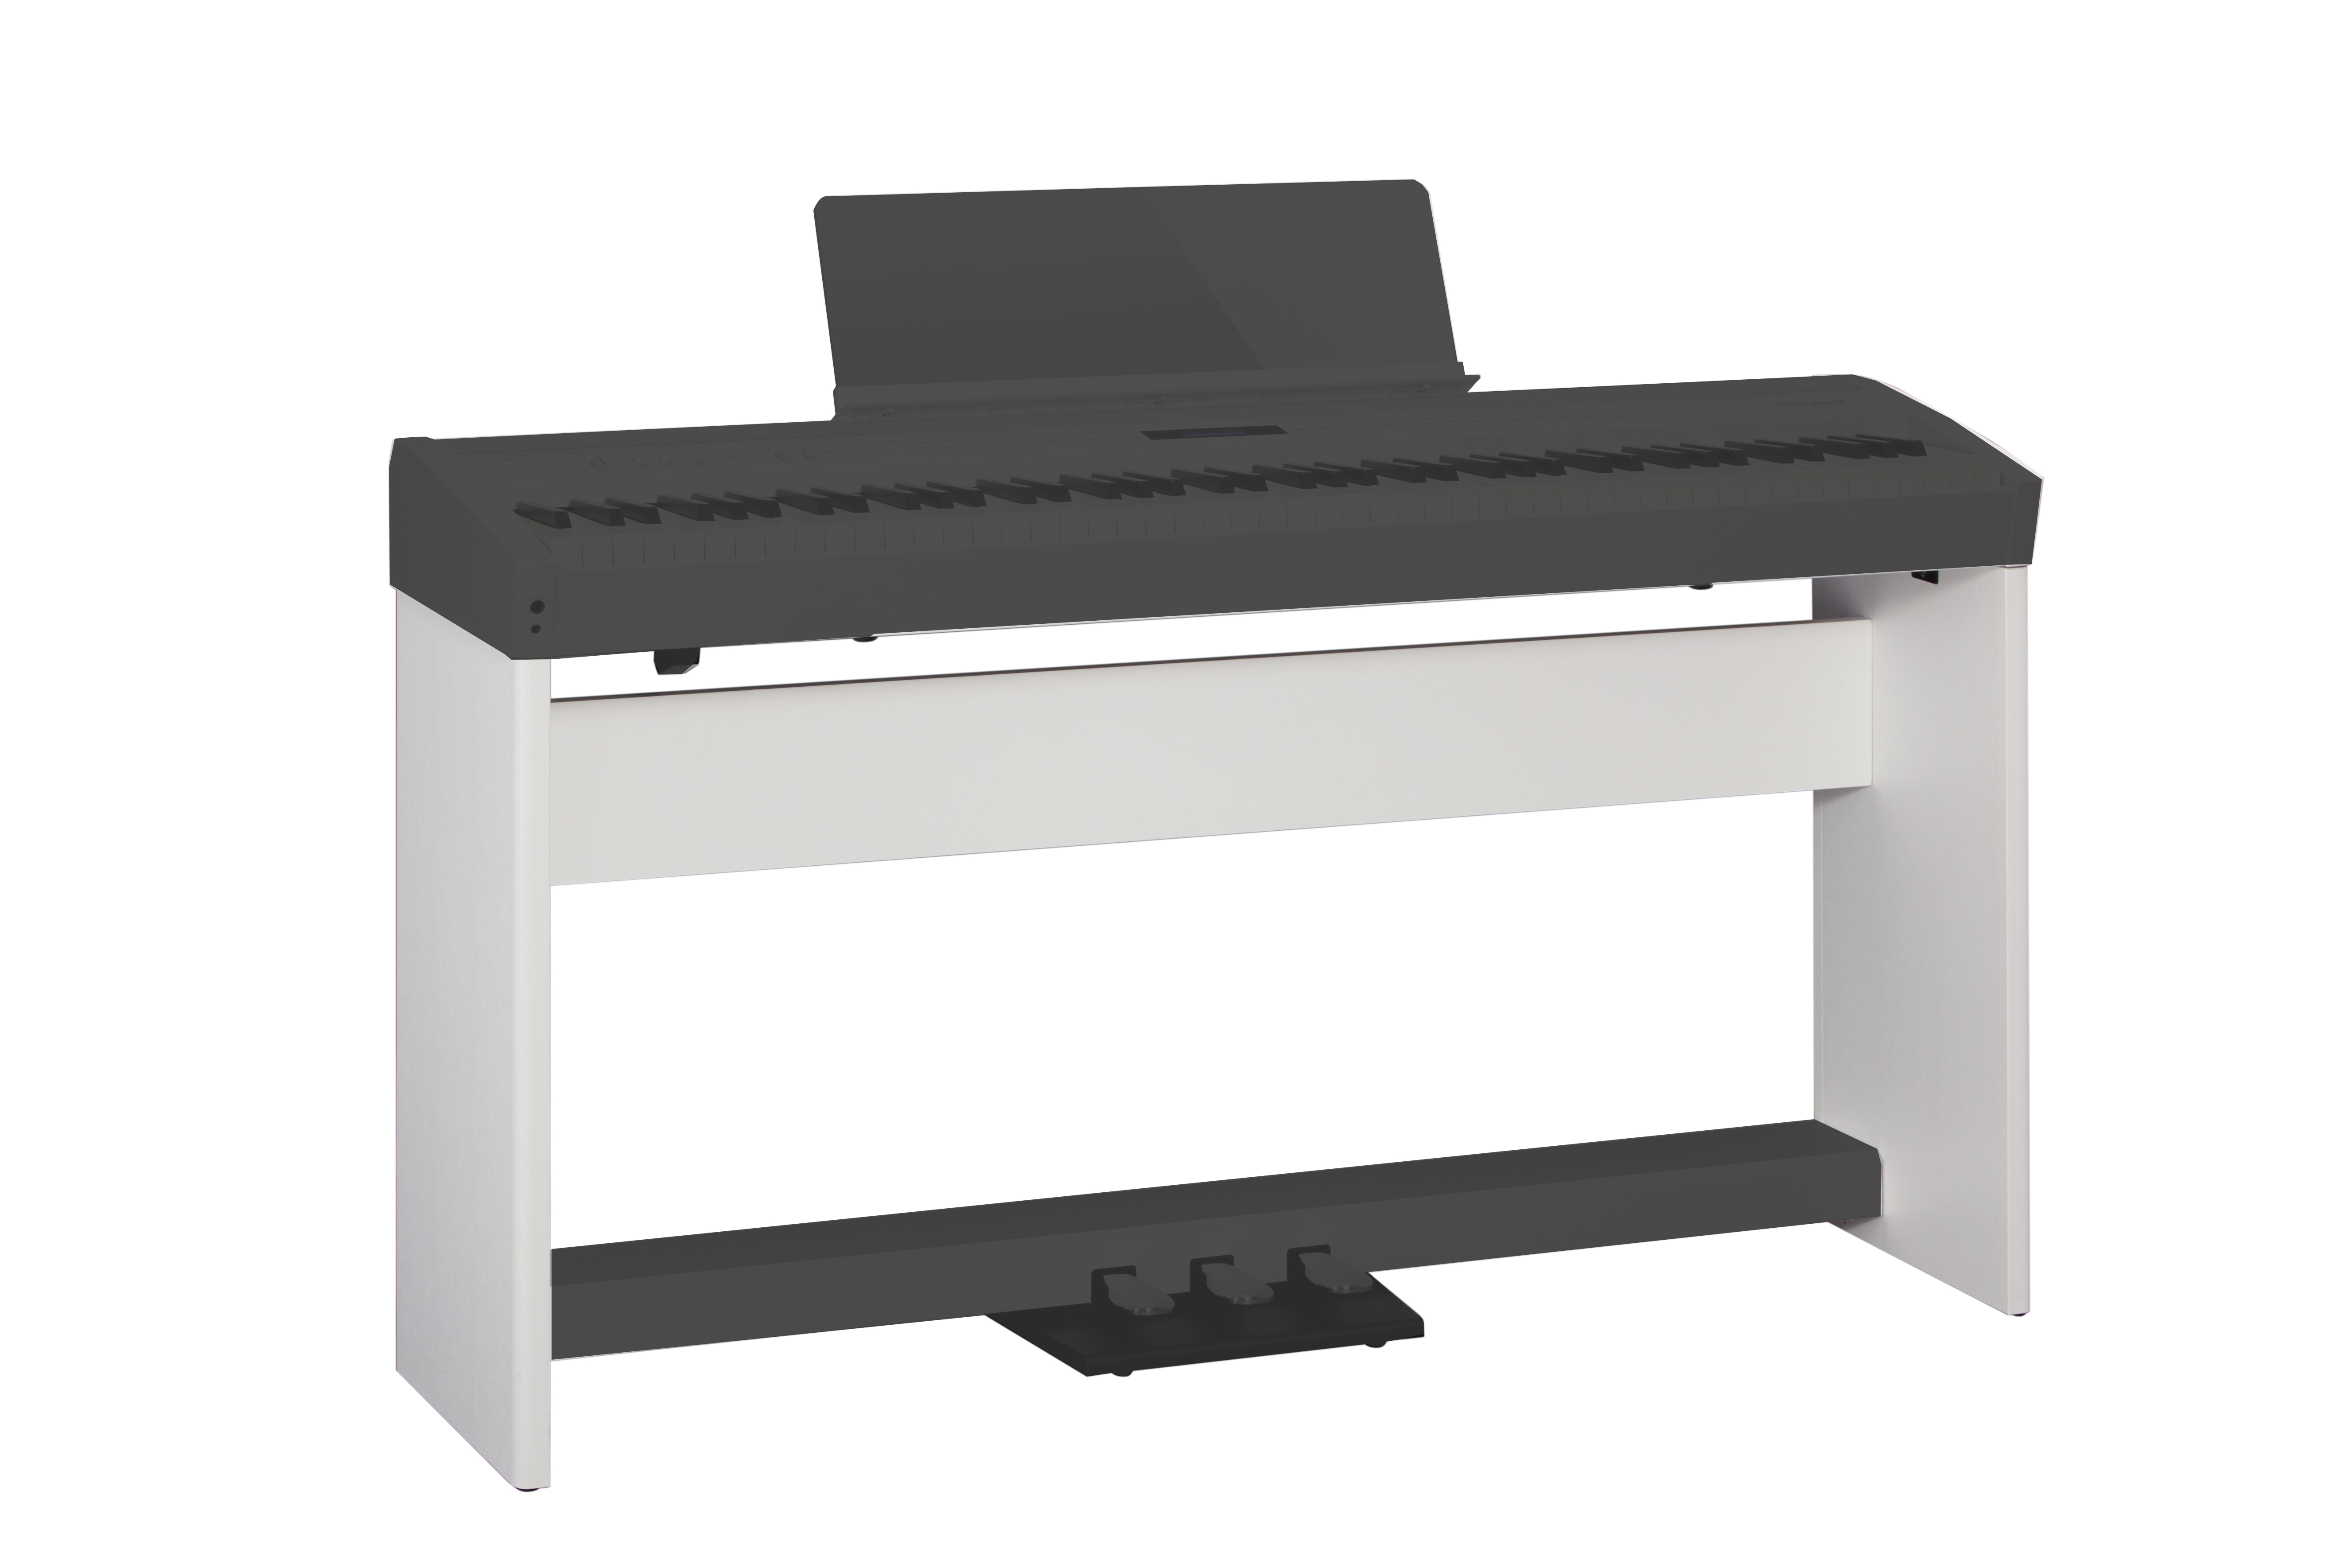 Claviers & Pianos - STANDS - ROLAND - KSC-72-WH - Royez Musik